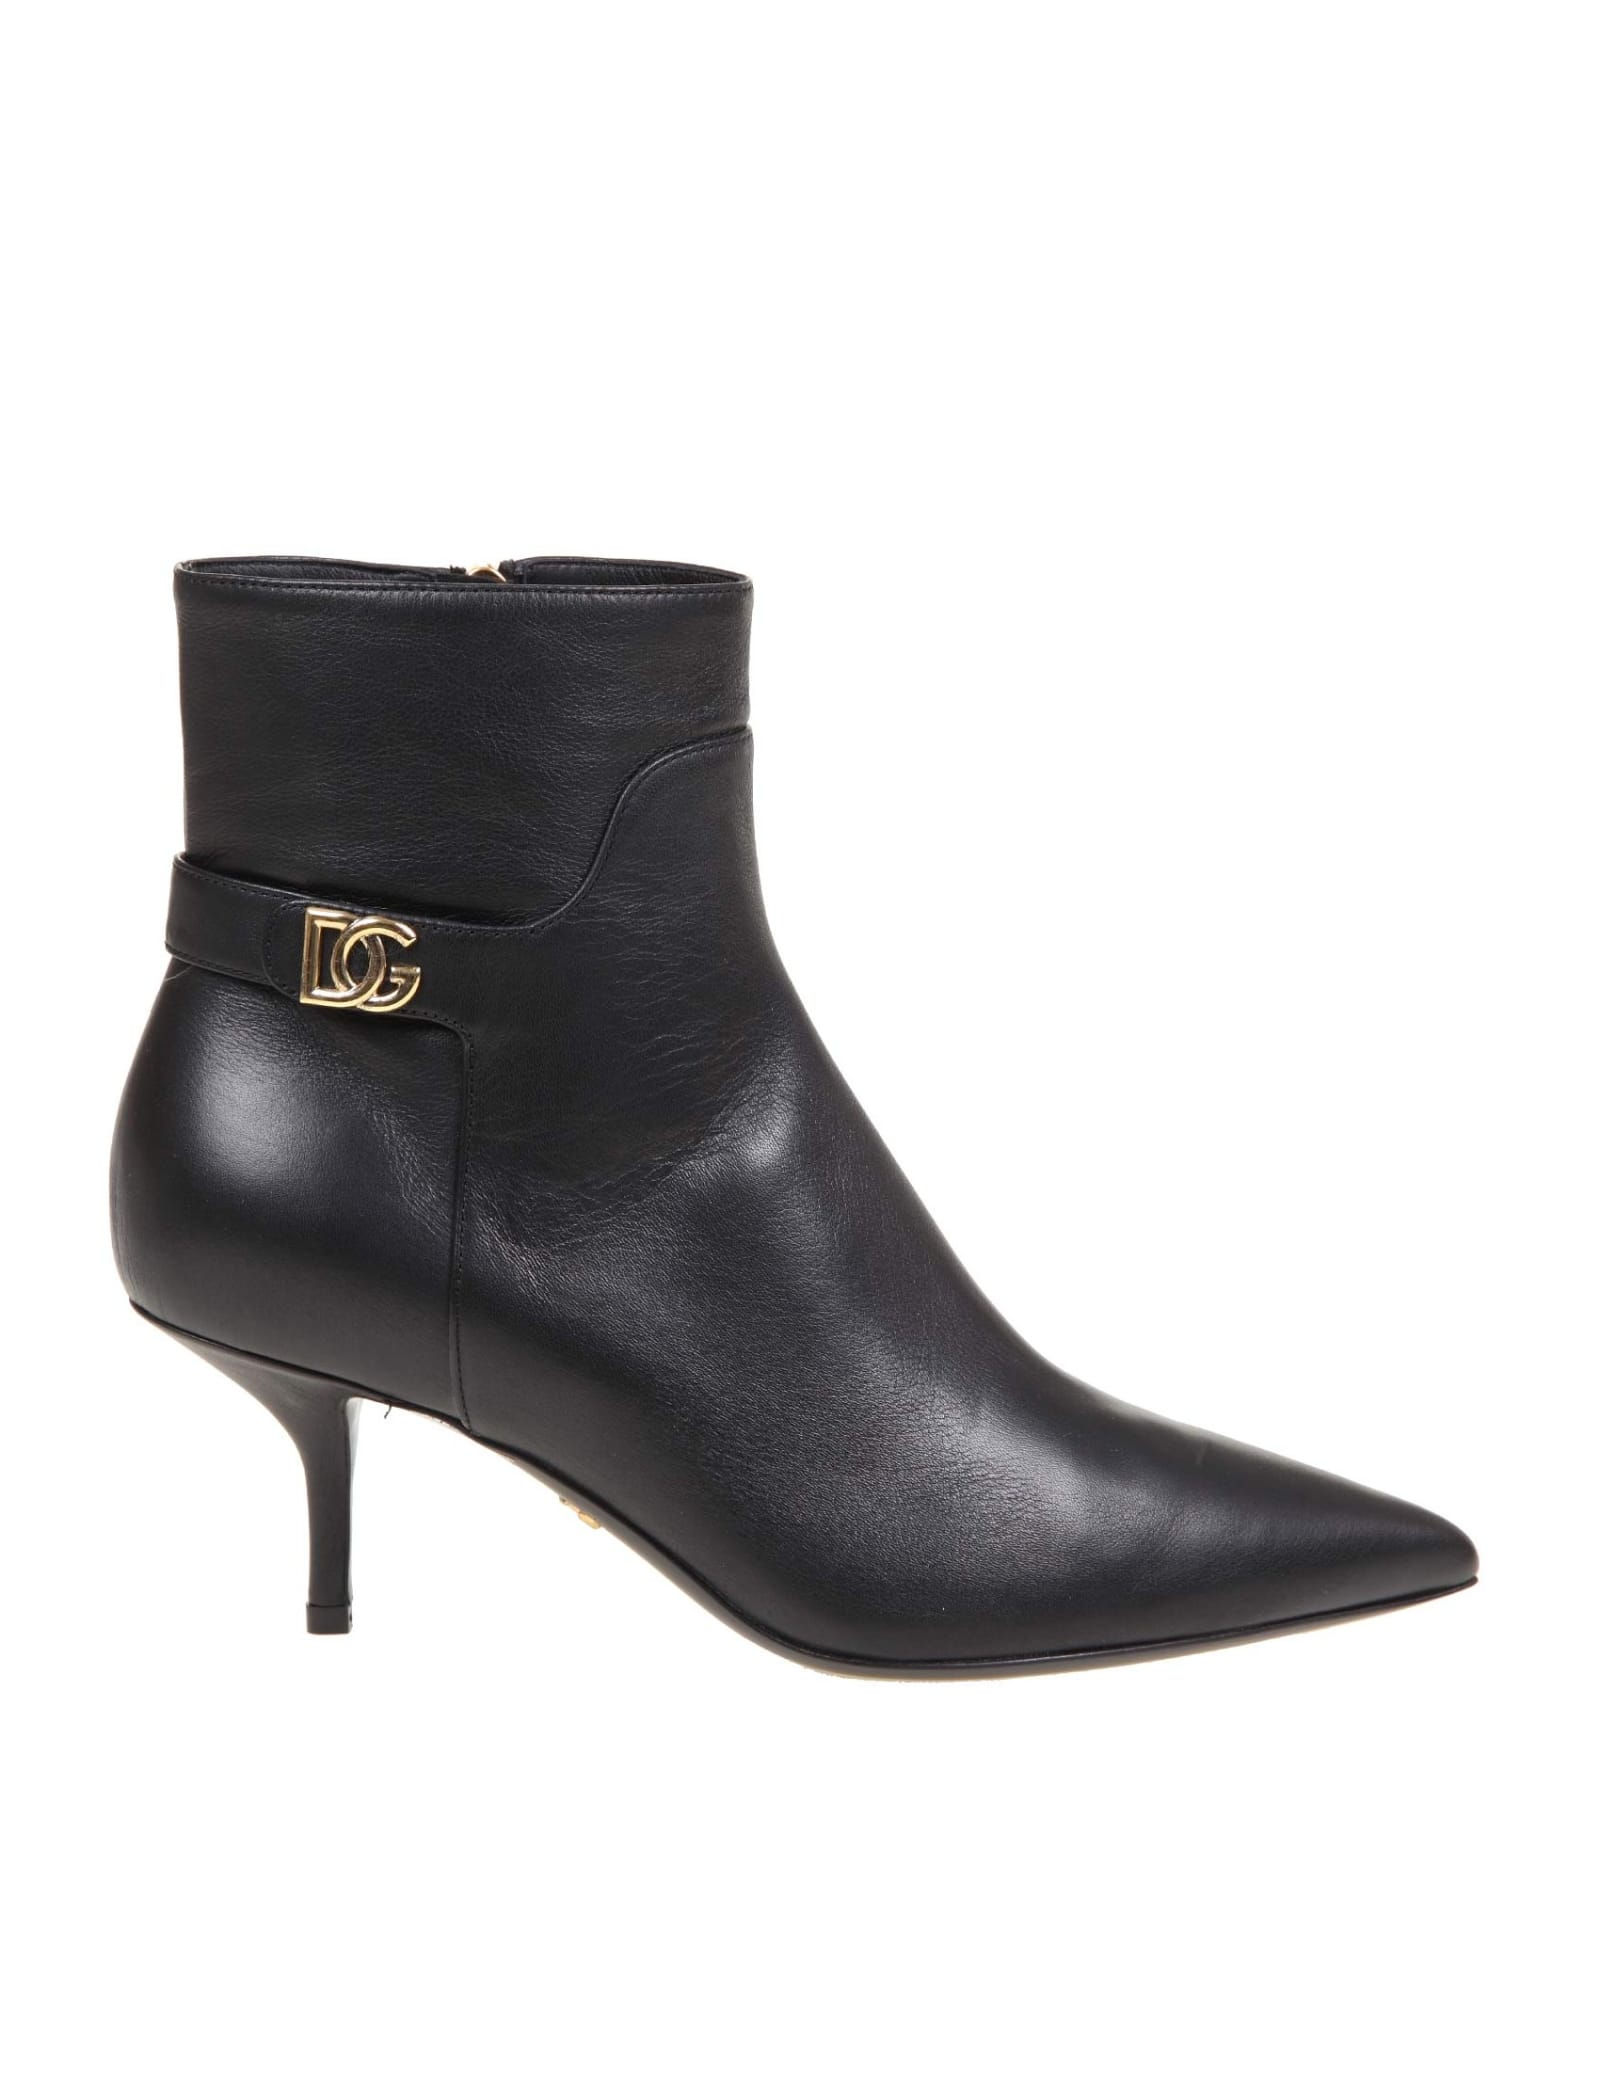 Dolce & Gabbana BOOTS IN LEATHER AND BLACK COLOR